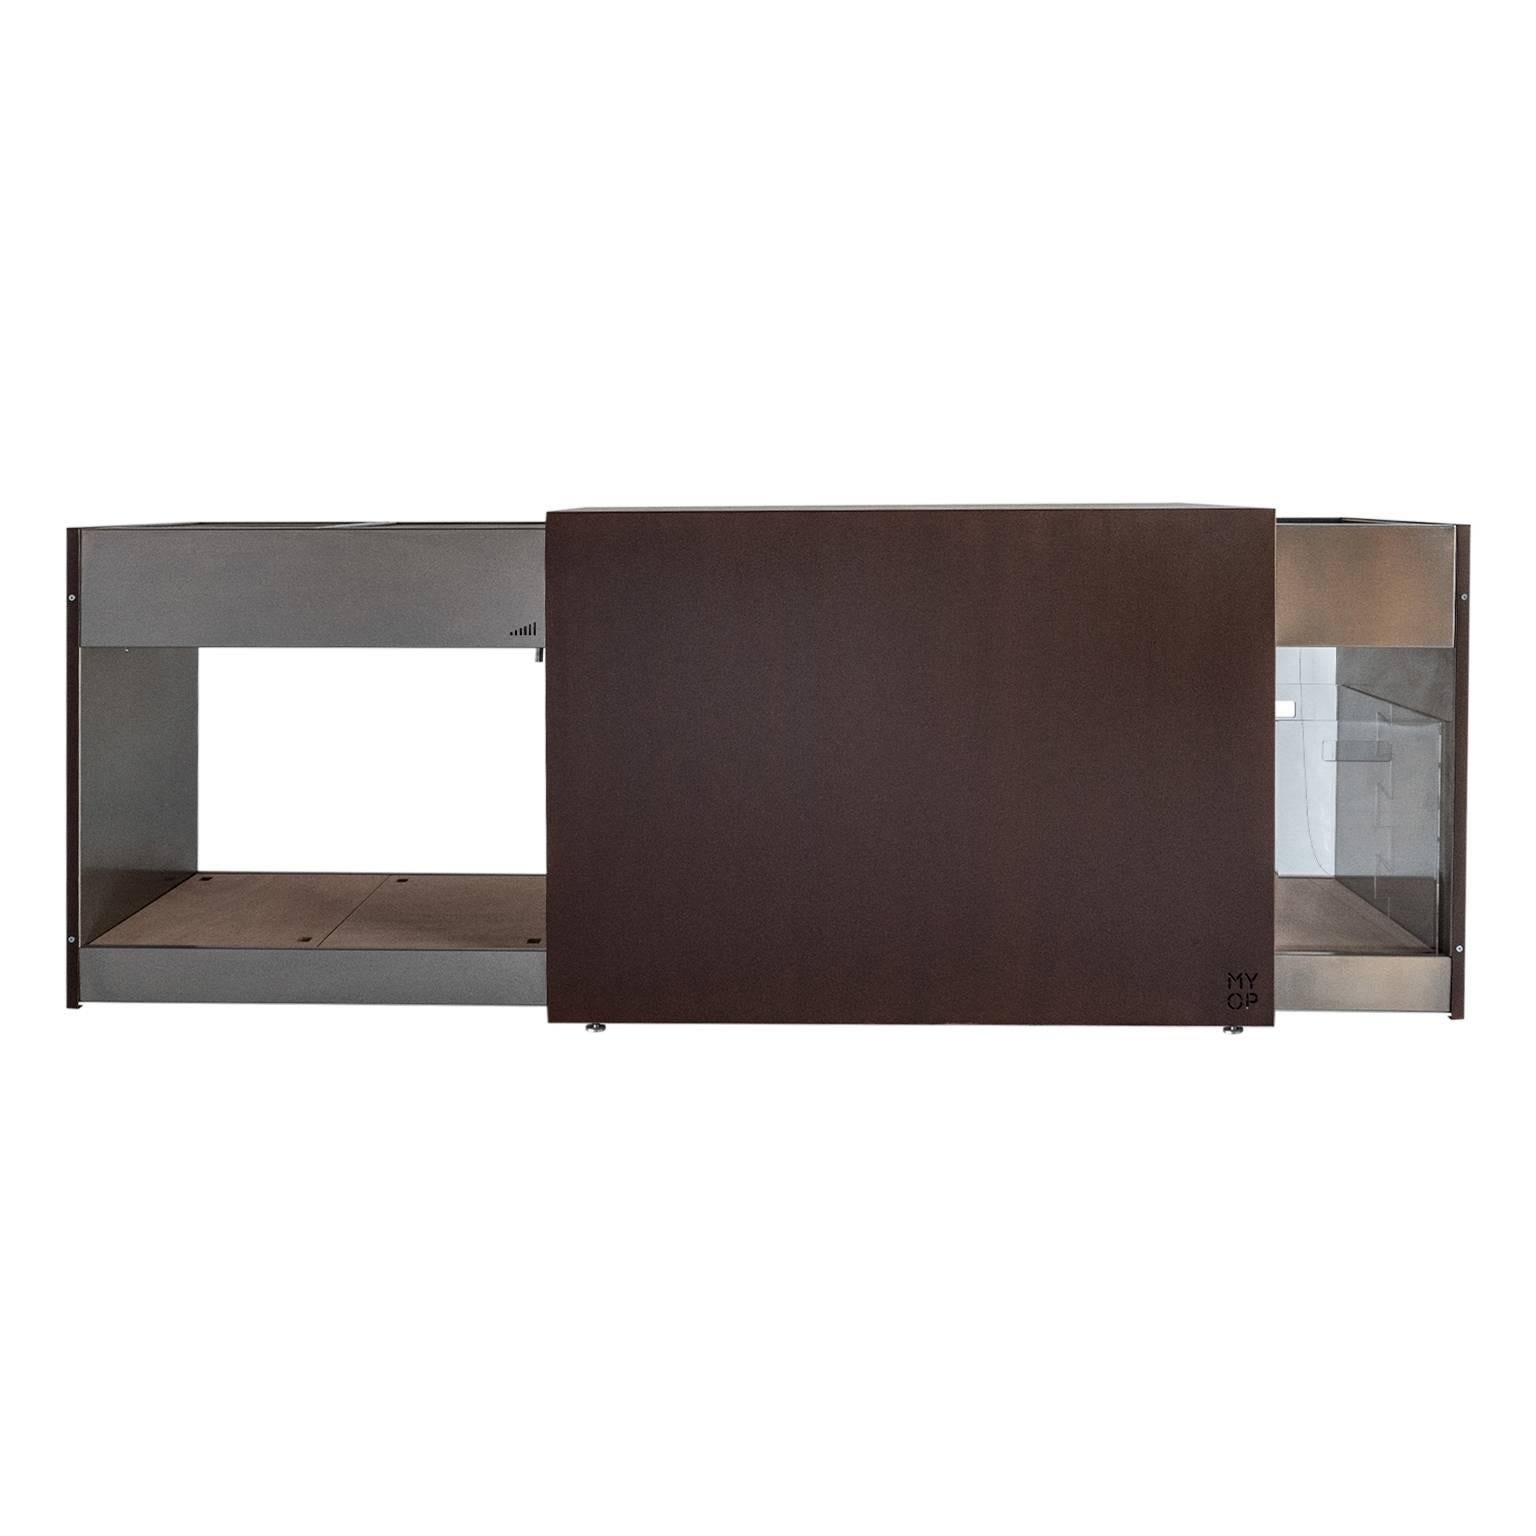 Elegant Corten Outdoor Charcoal Barbecue with Shelves and Cupboards, Snail